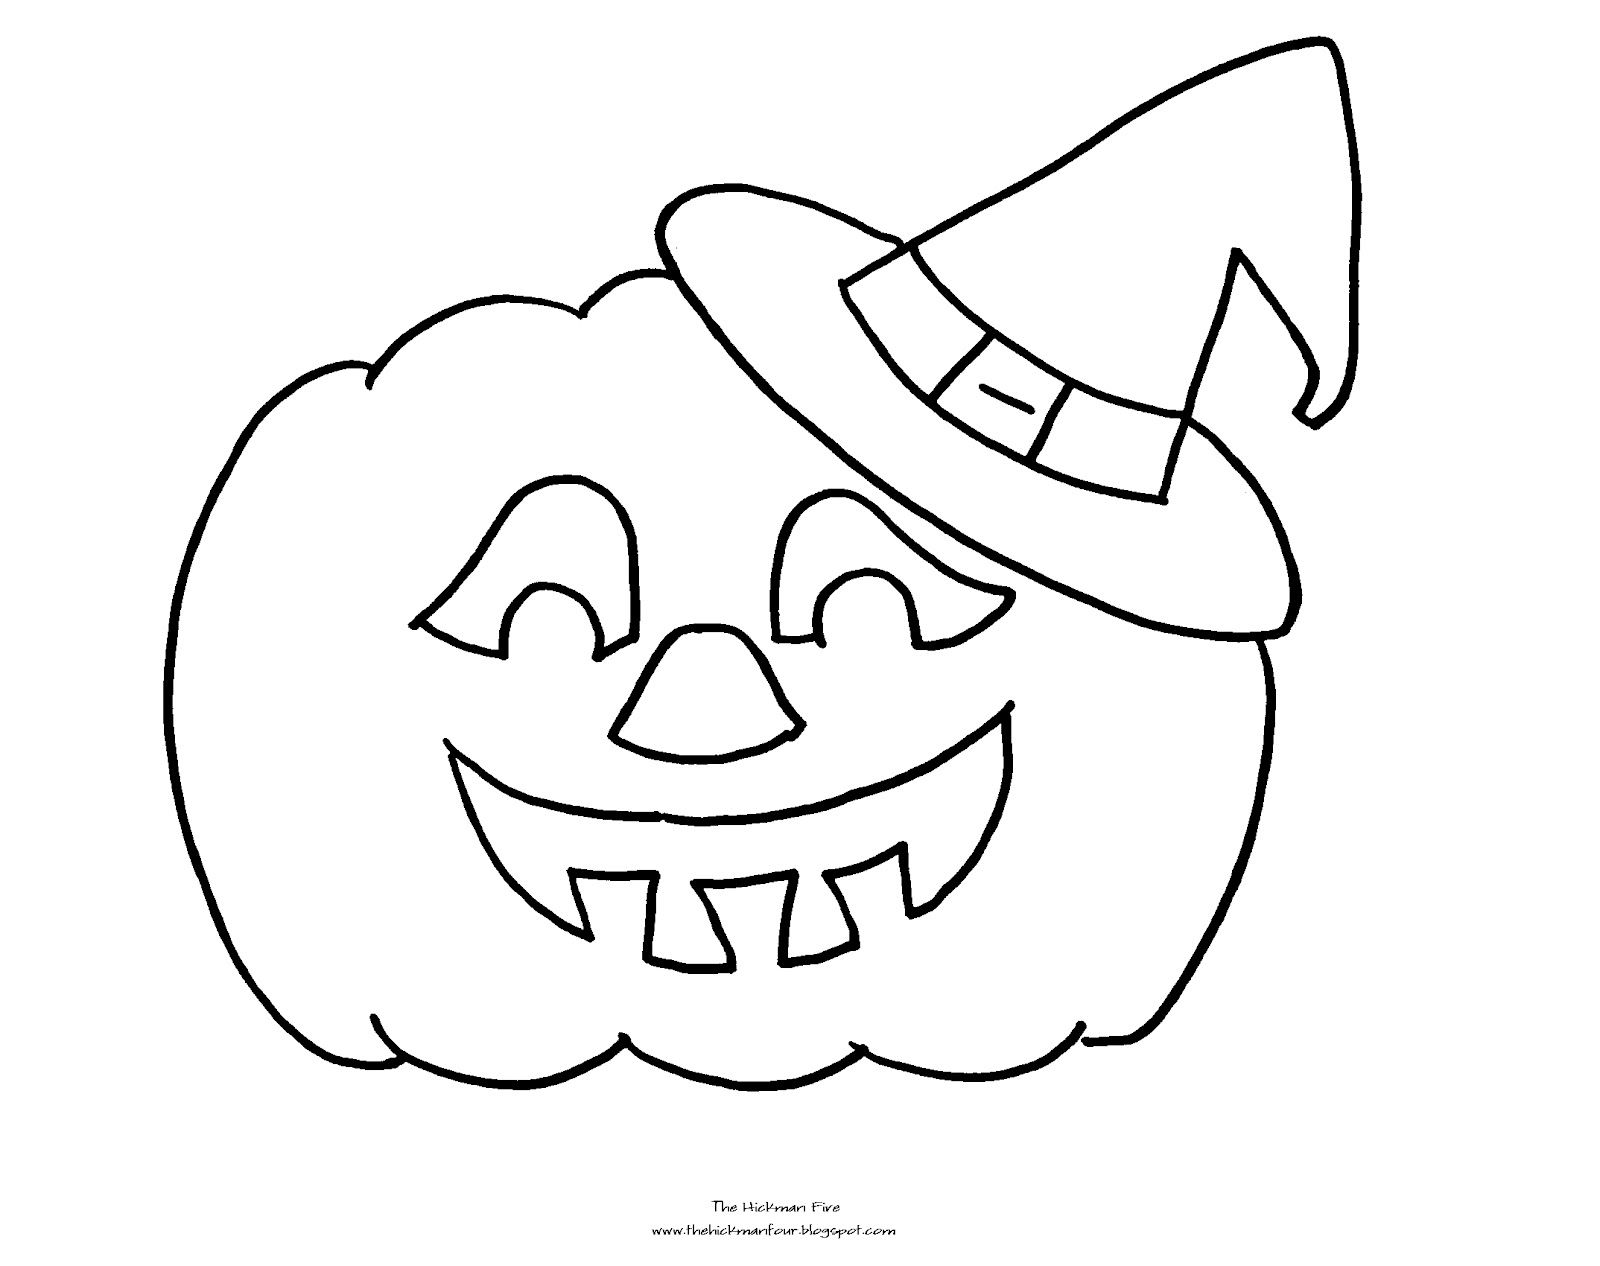 Fall Coloring Pages For Kindergarten Hickman Five Coloring Pages Coloring Pages Halloween Halloween Coloring Pages Halloween Coloring Coloring Pages